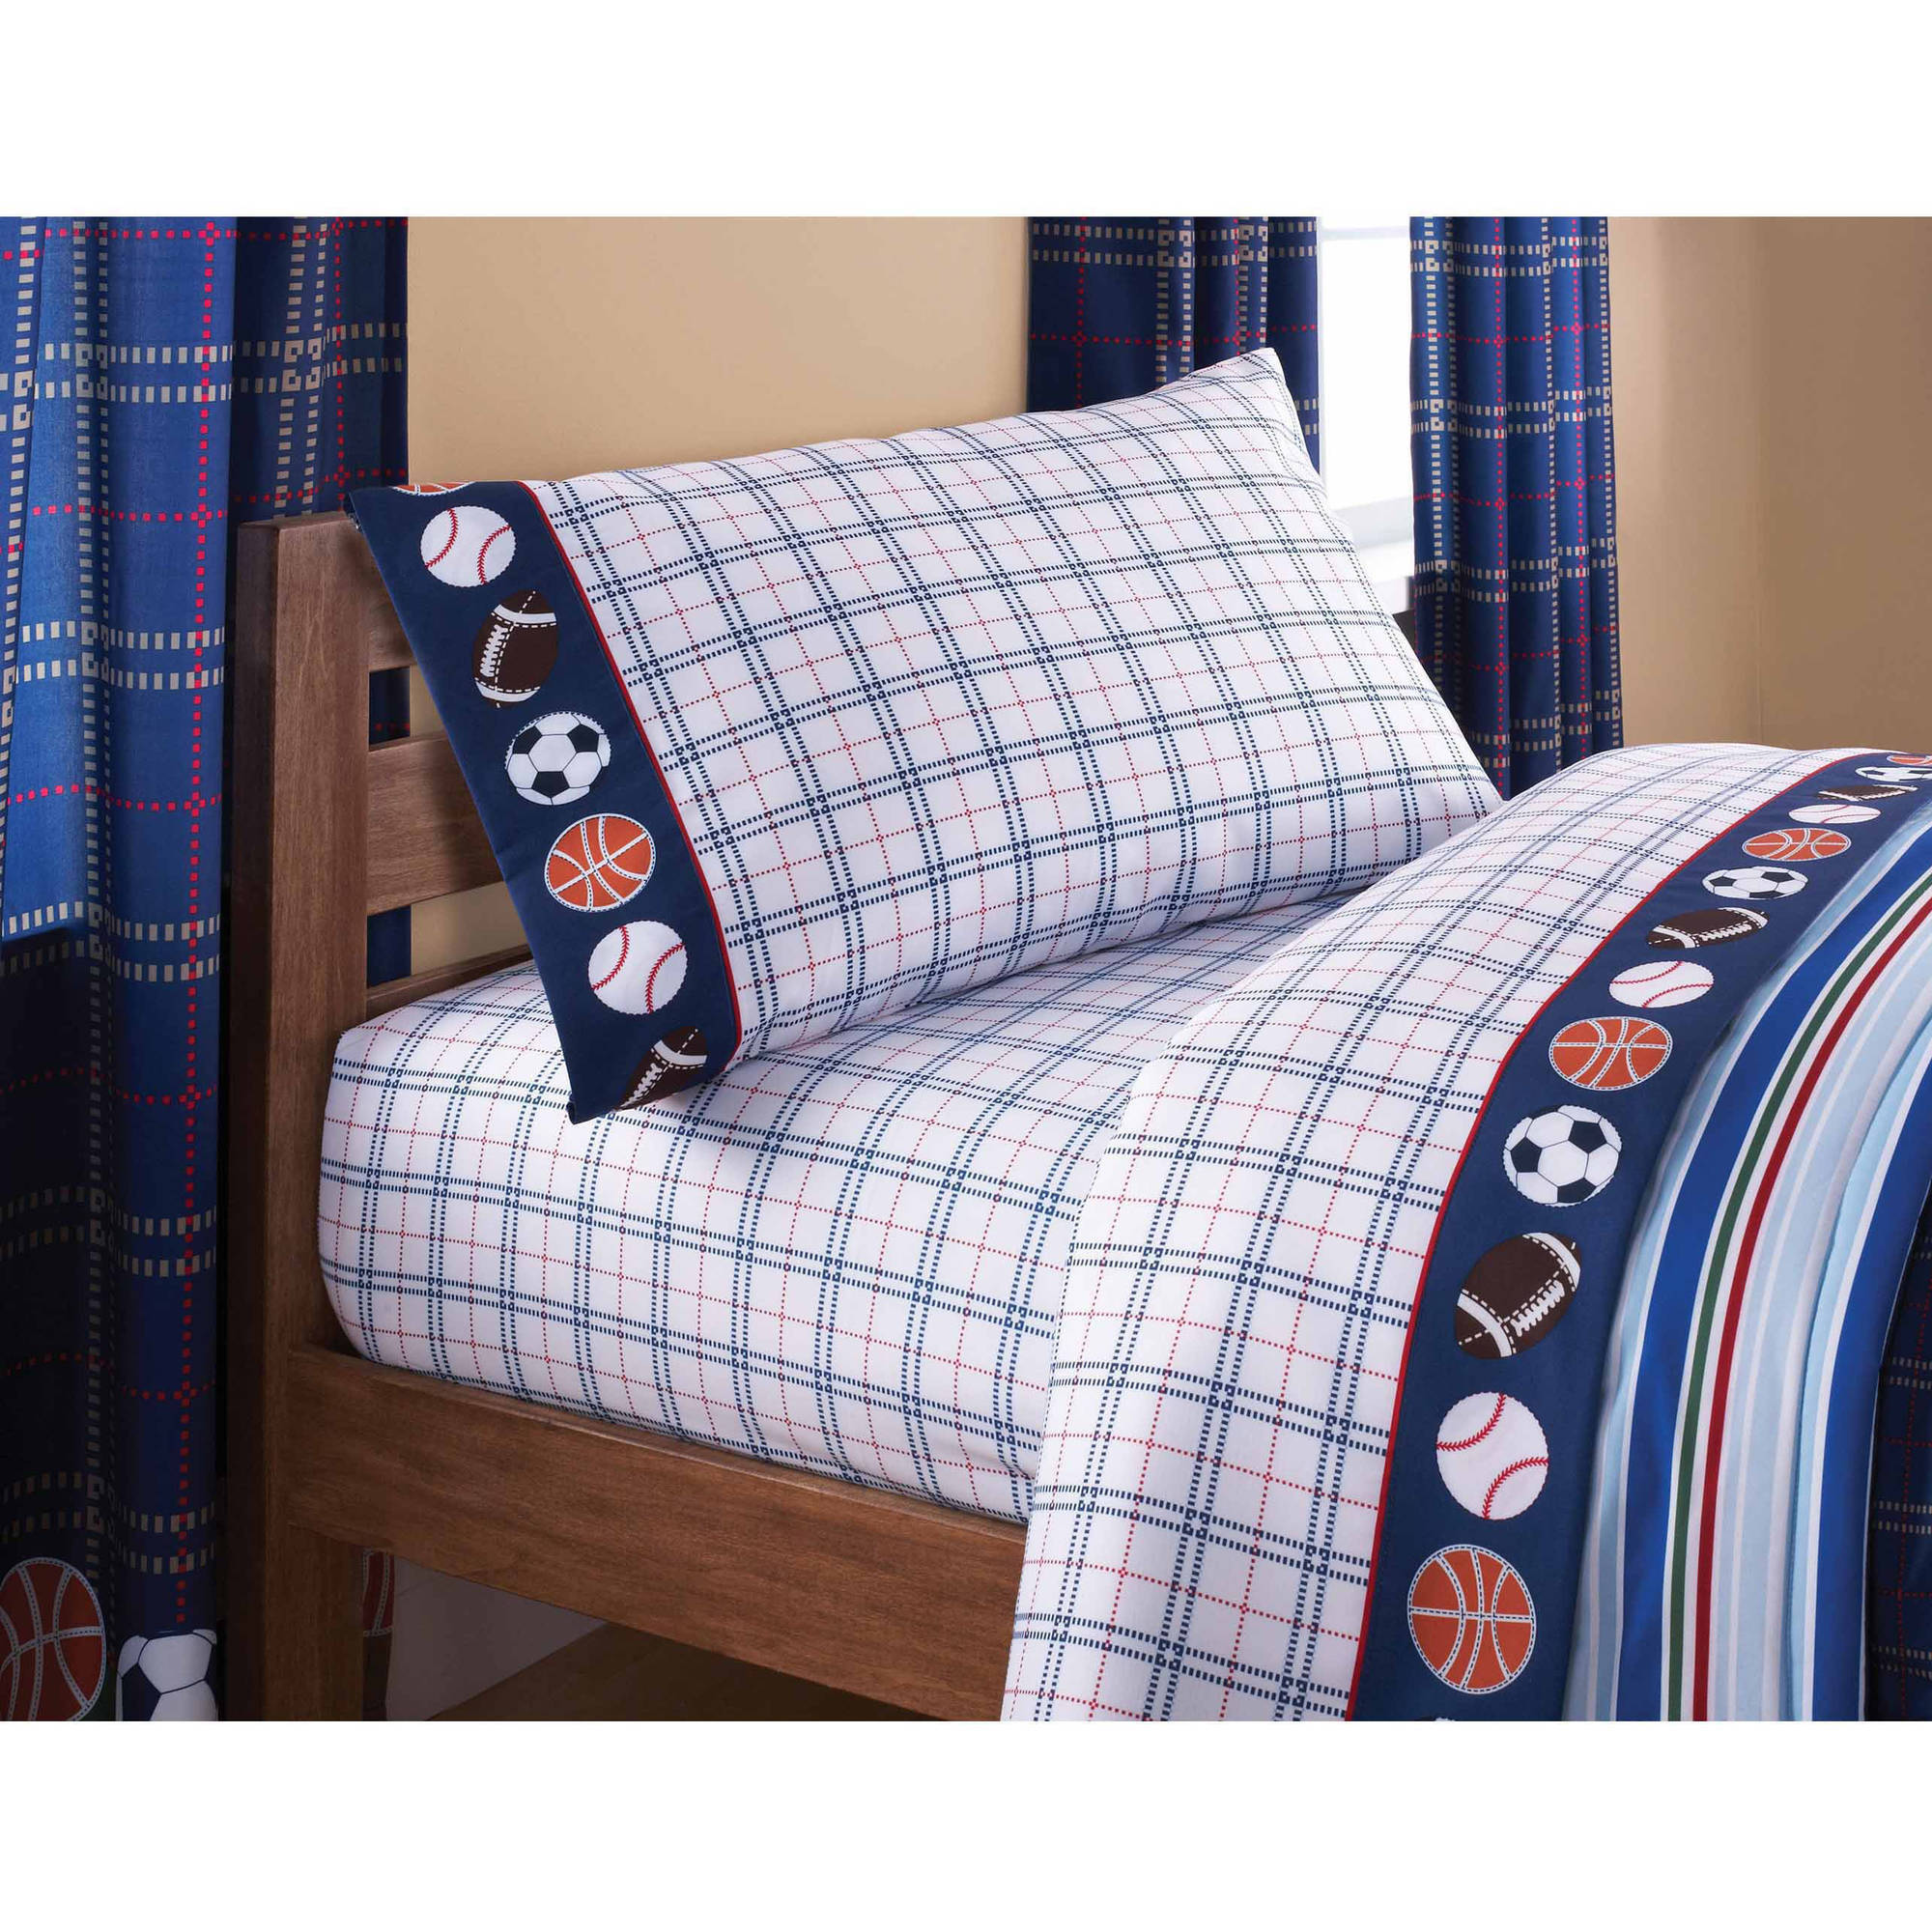 Mainstays Kids Sheet Set Walmartcom - Boys sports bedding sets twin